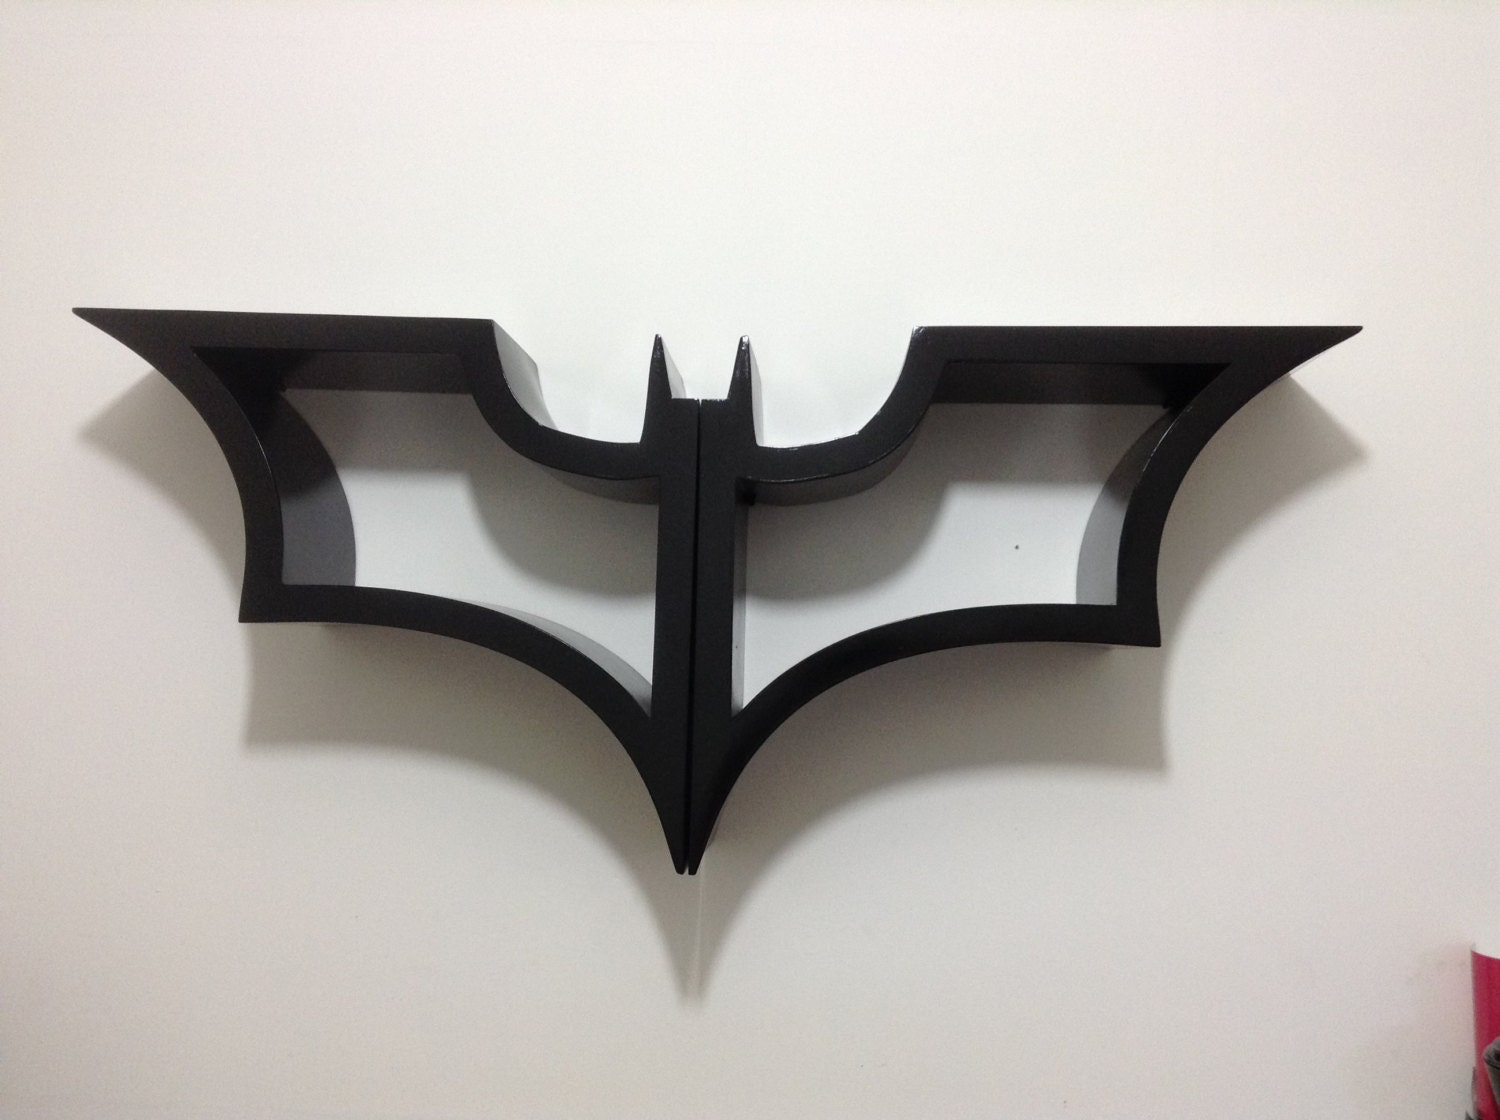 Batman bookshelf made of wood